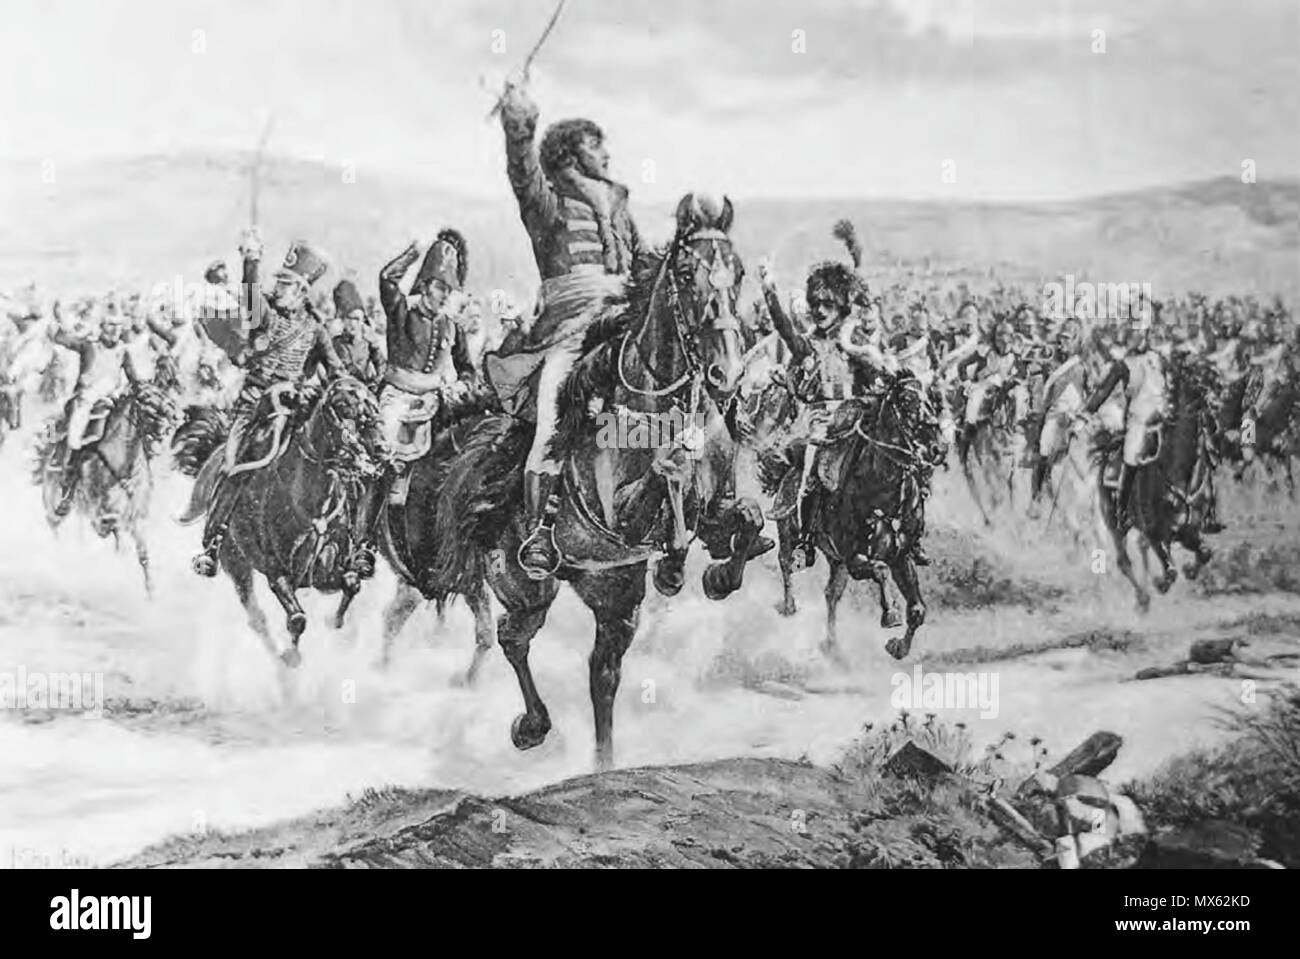 . English: Marshal Murat, the most famous of many daring and charismatic French cavalry commanders of the era, leads a charge at the Battle of Jena, 14 October 1806. 1895. Henri Chartier 125 Chartier-Murat at Jena - Stock Image